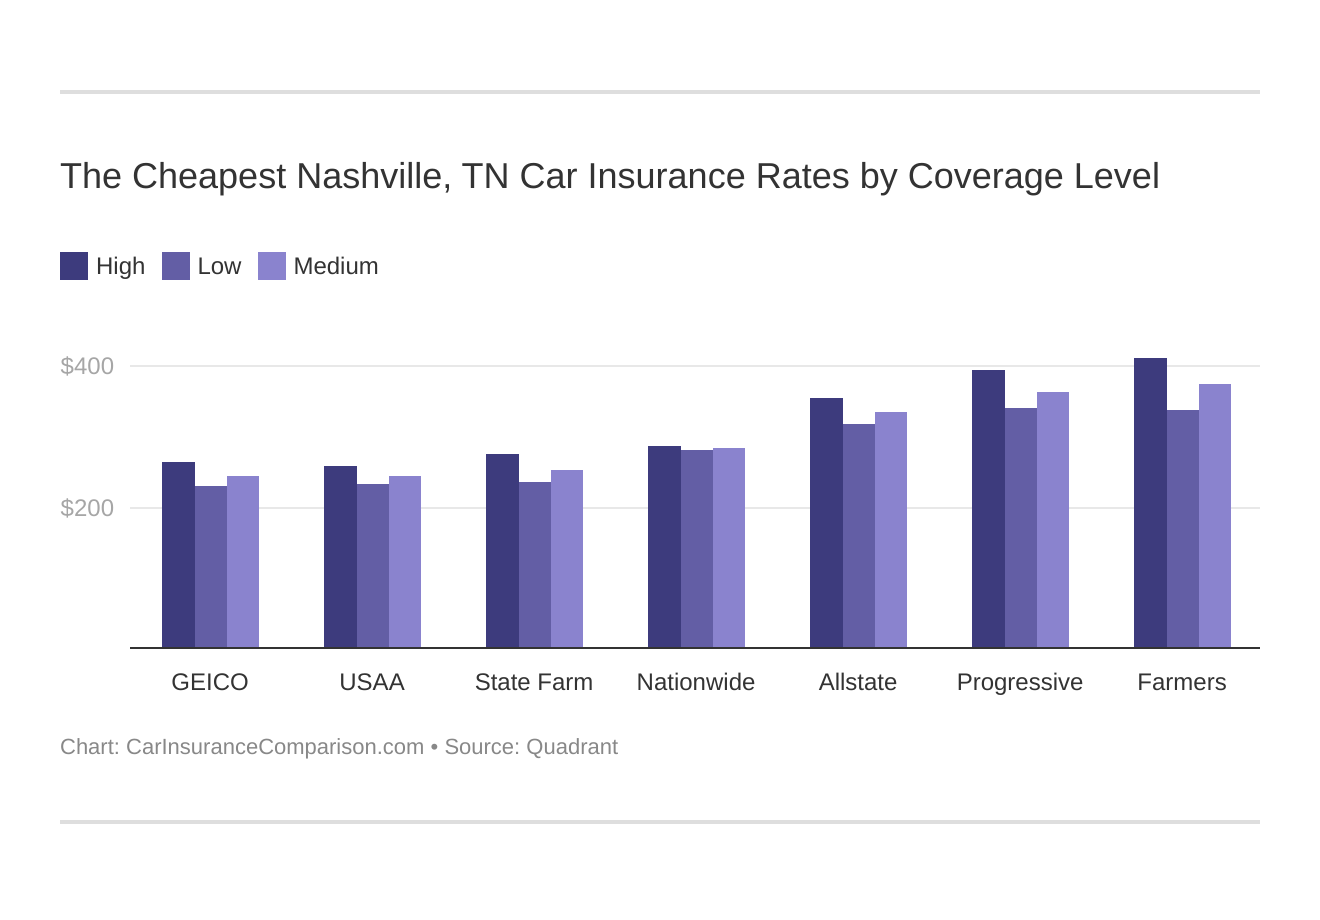 The Cheapest Nashville, TN Car Insurance Rates by Coverage Level